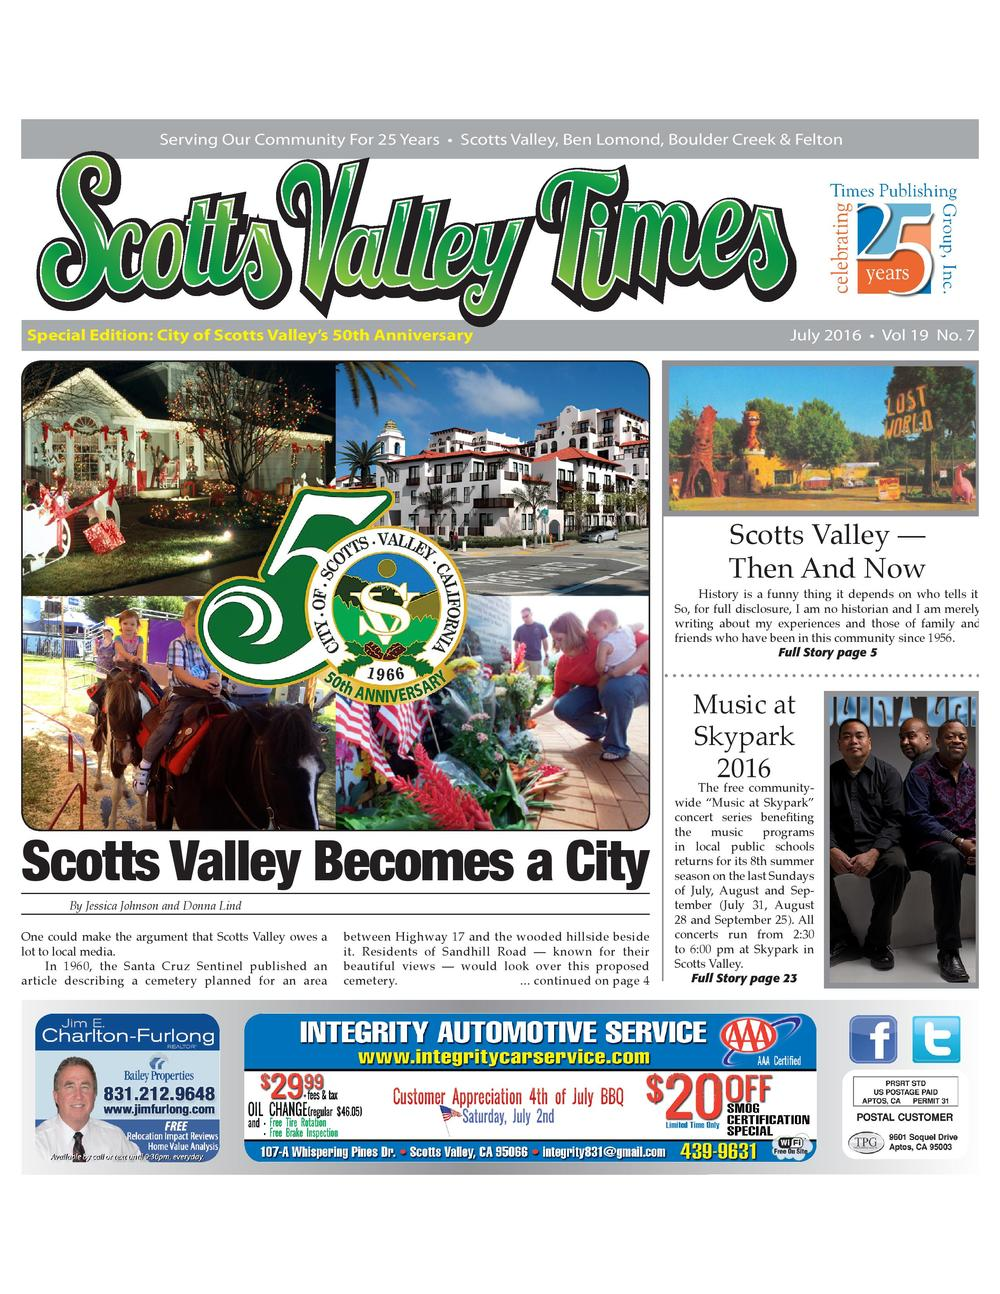 Scotts Valley Times, July 2016